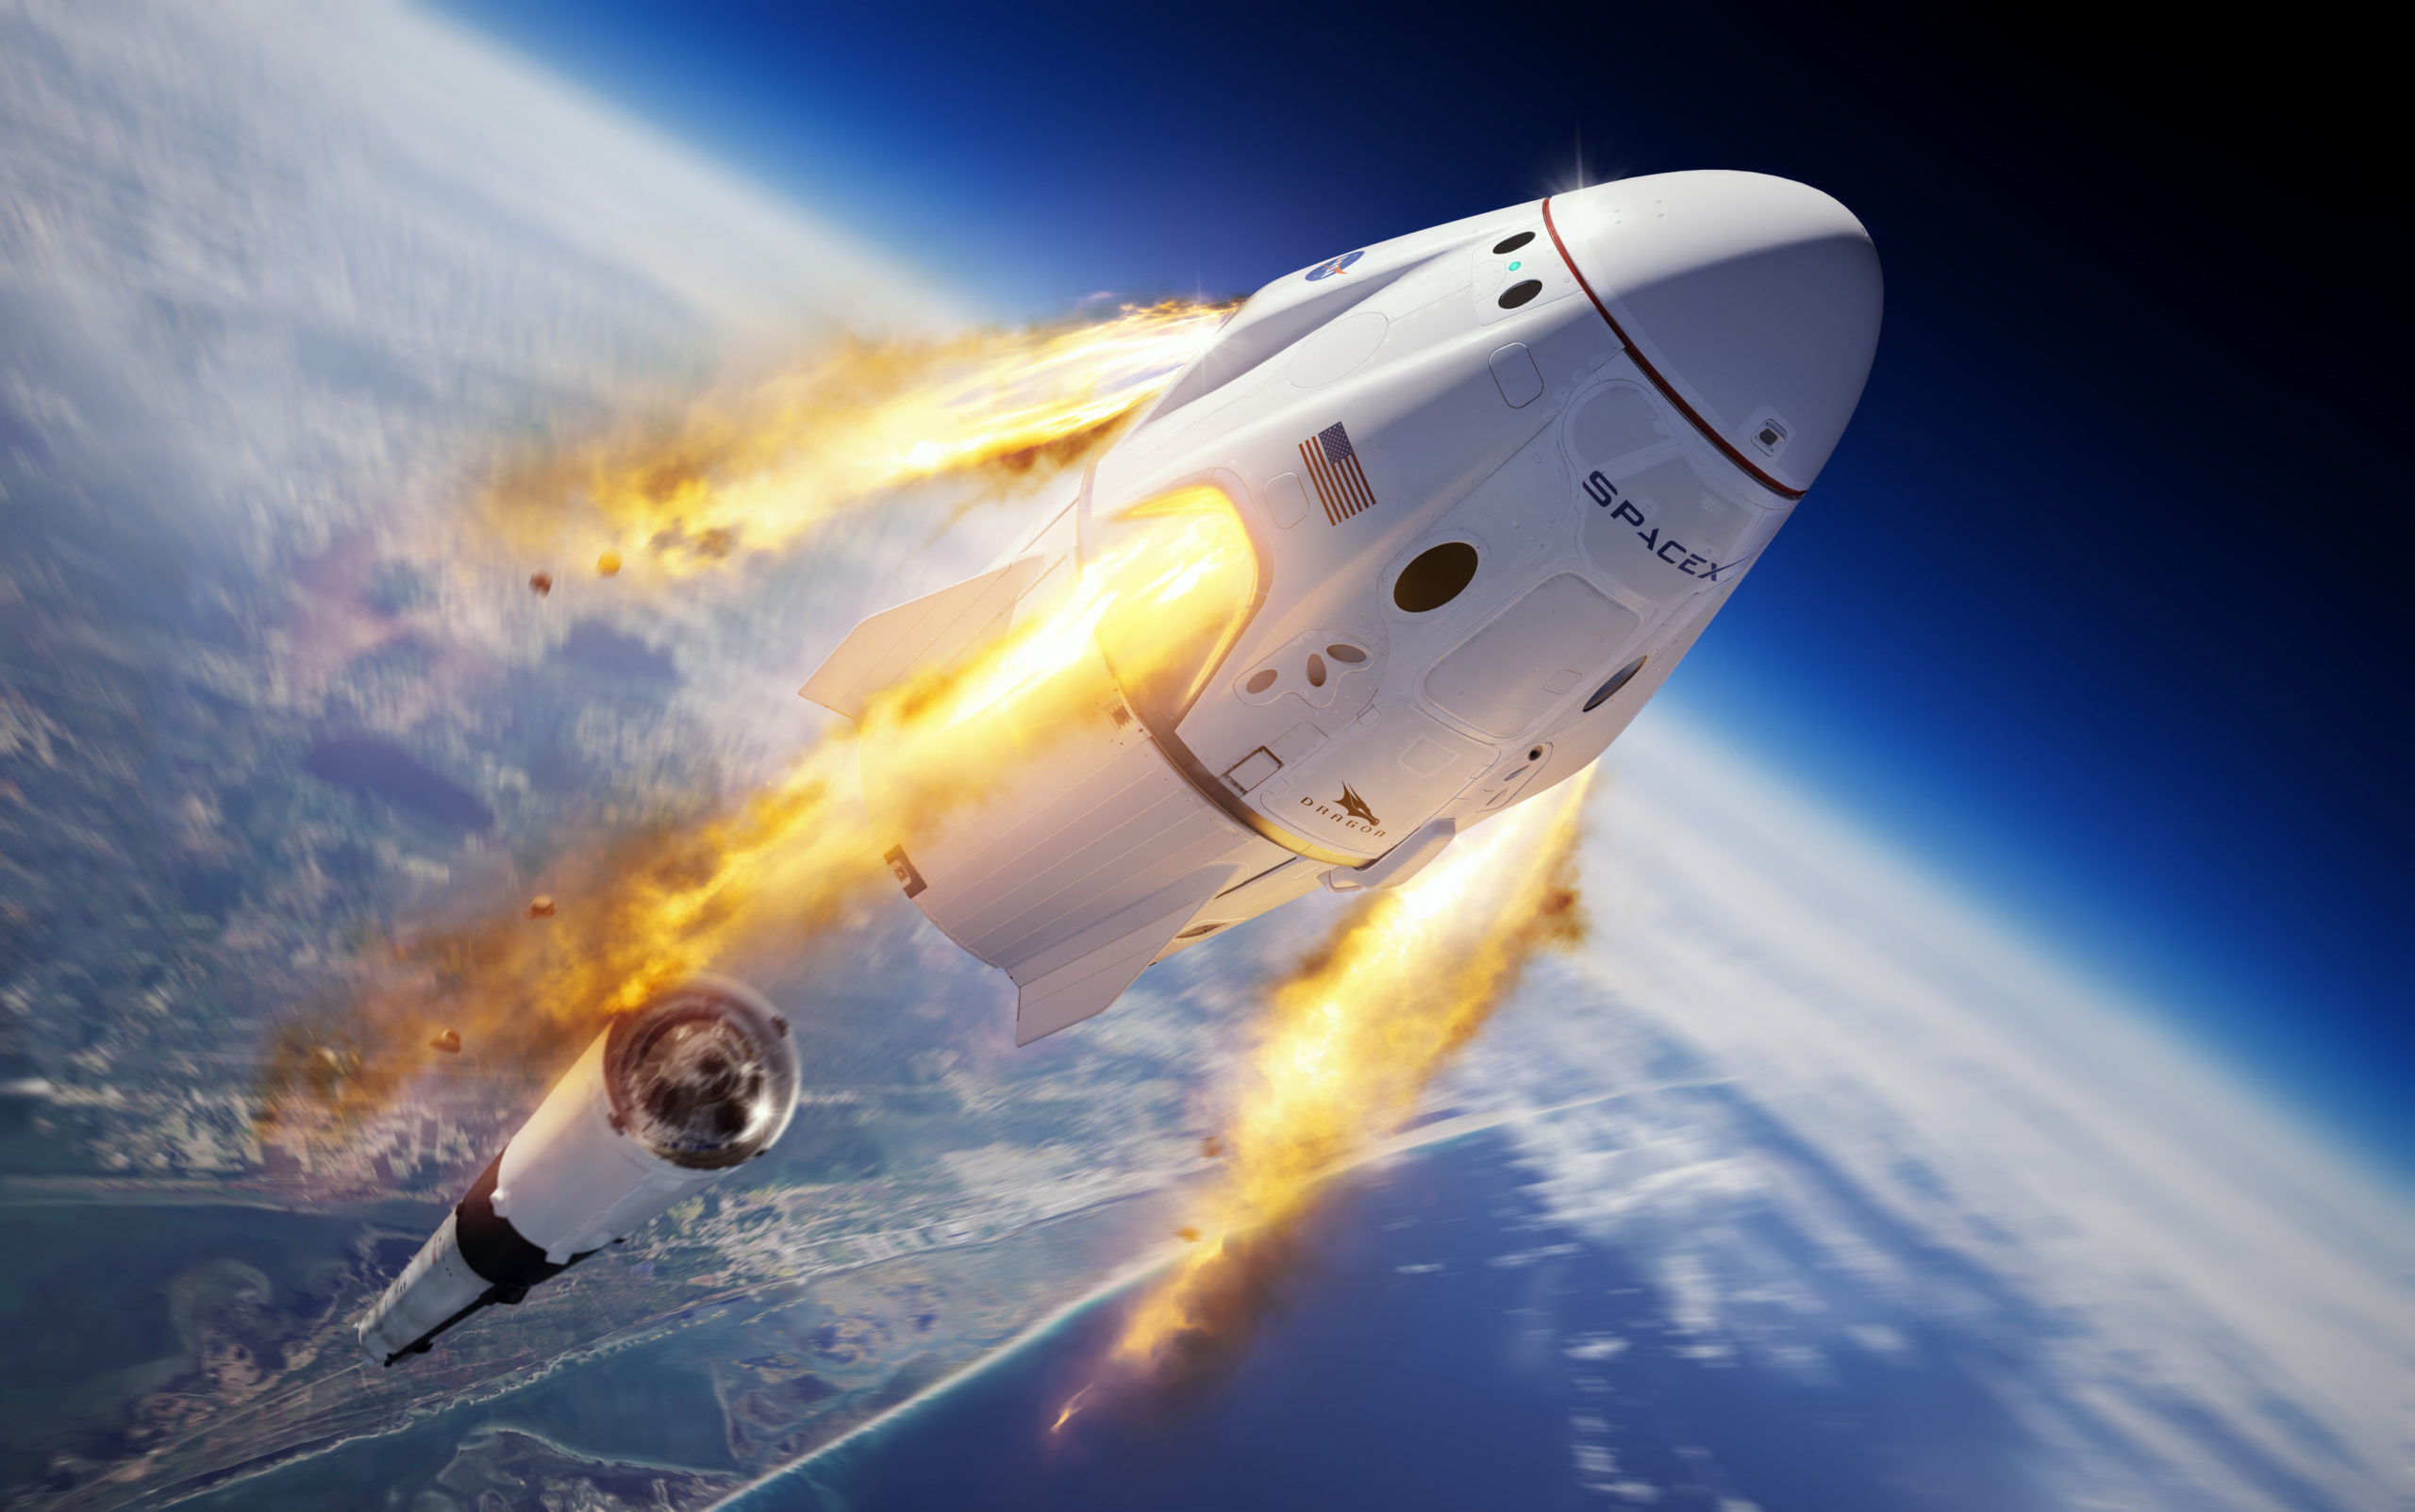 A SpaceX illustration of their Crew Dragon capsule and Falcon 9 rocket